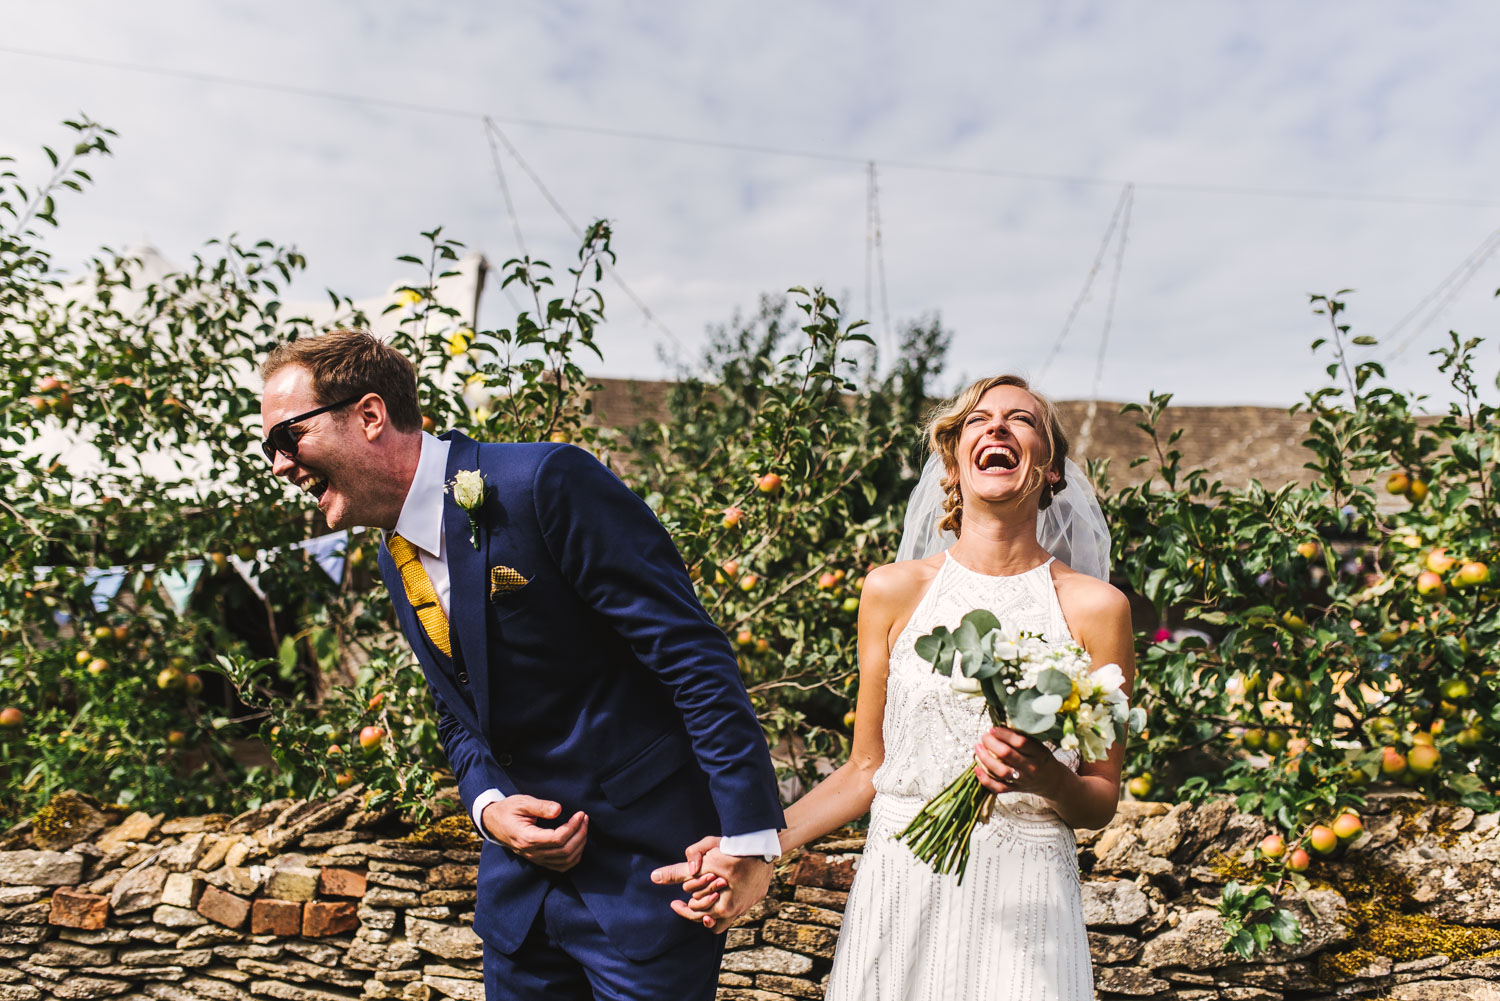 fun and laughter at an outdoor rustic wedding in tetbury